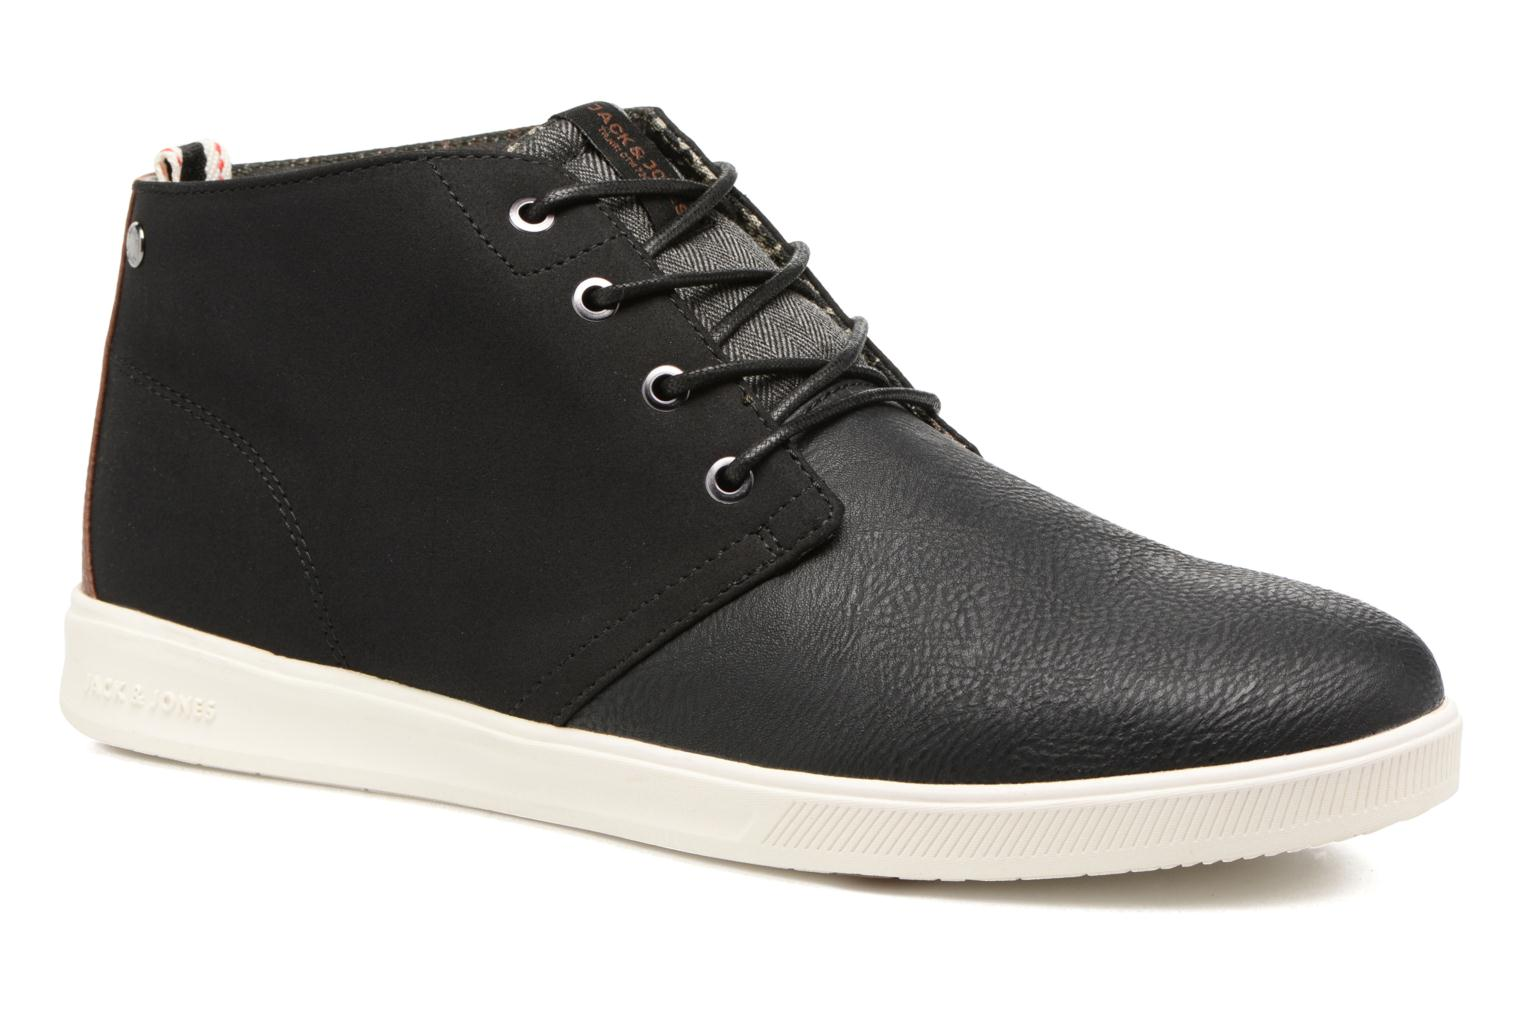 Baskets Jack & Jones JFWDENTON PU MIX Noir vue détail/paire